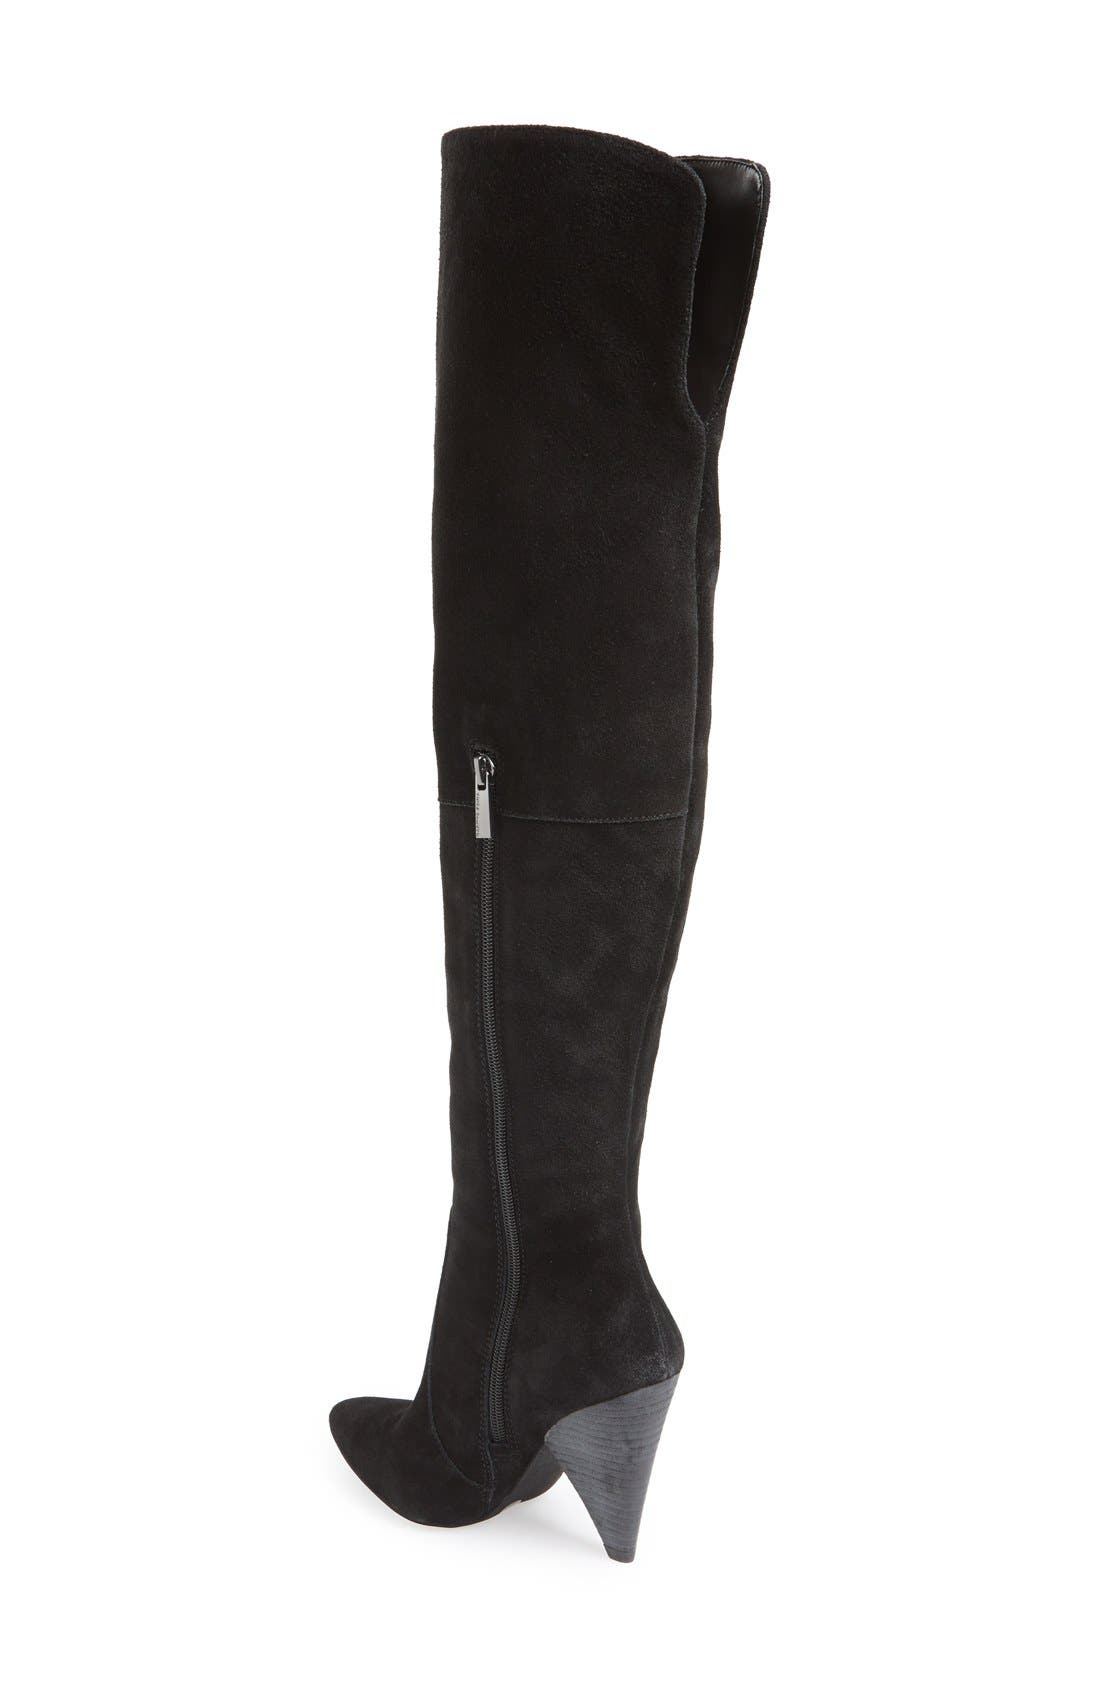 Alternate Image 2  - Vince Camuto 'Hollie' Over the Knee Pointy Toe Suede Boot (Women)